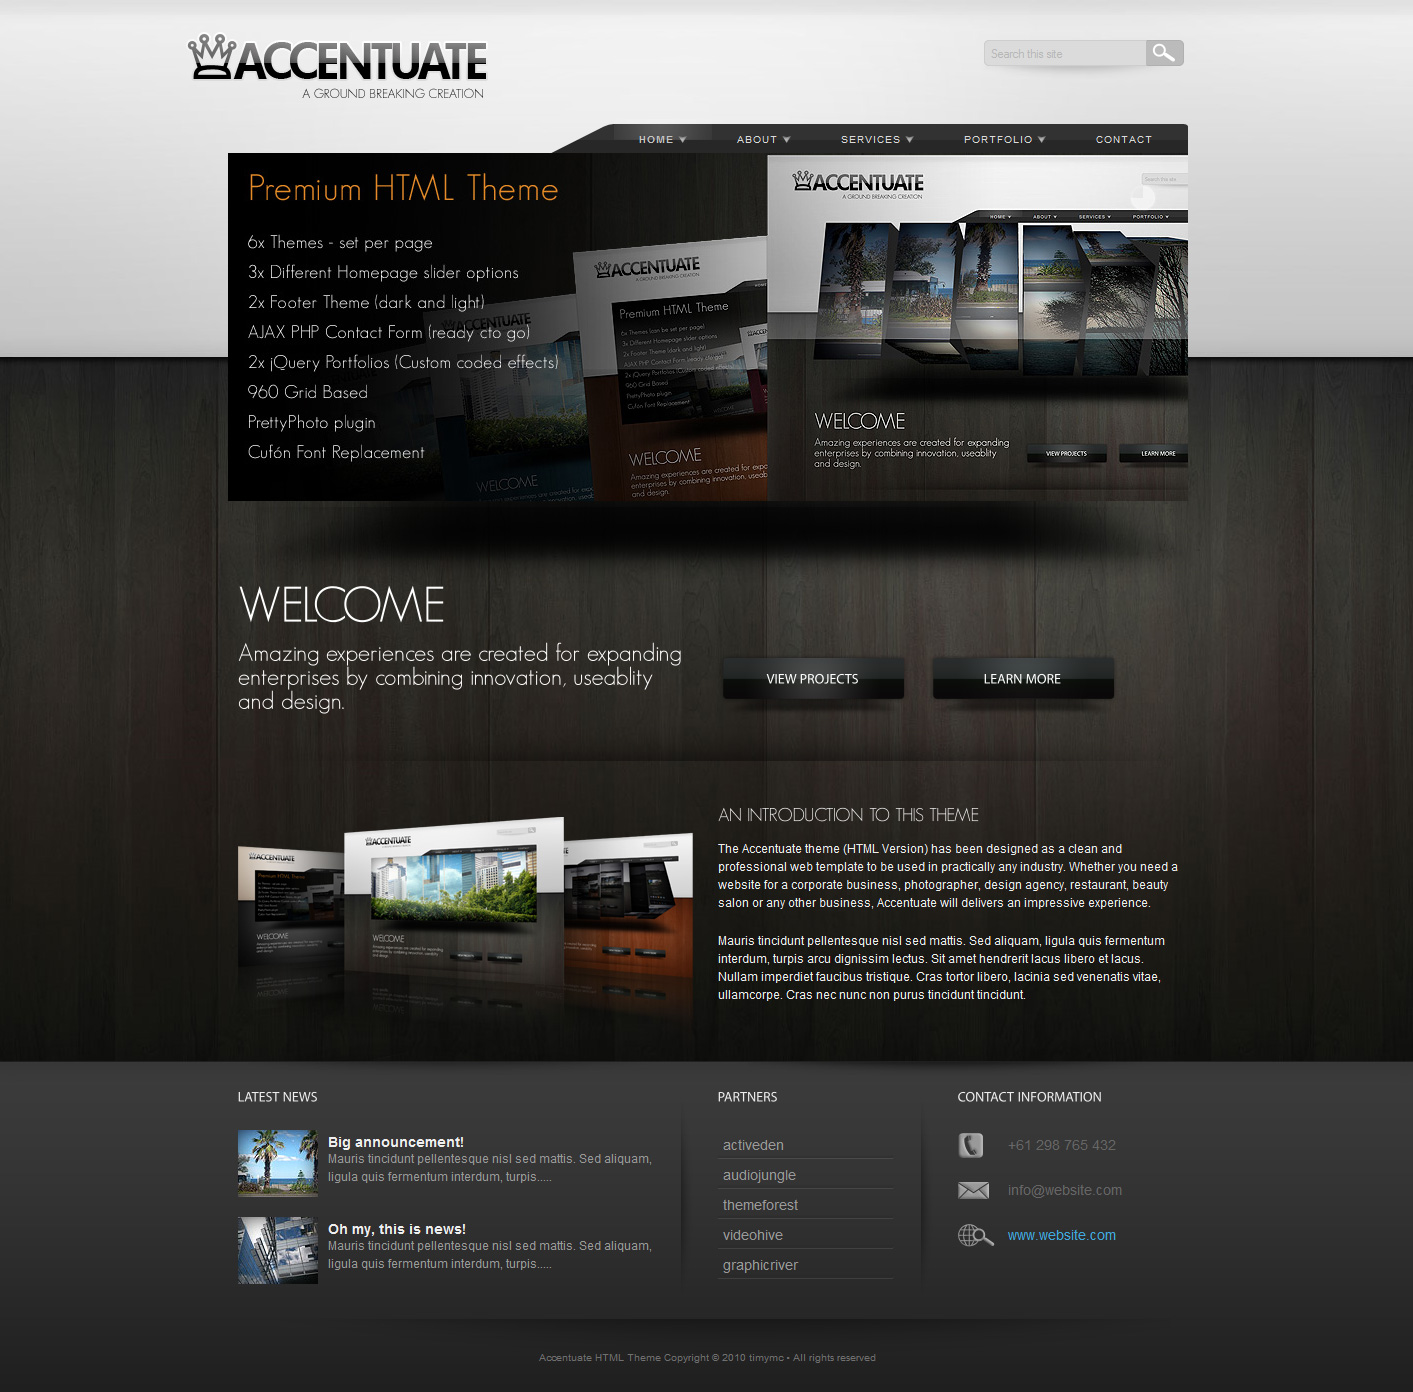 Accentuate Premium HTML Theme / Business Portfolio - Homepage layout - 3 different slider options to choose from. Easy to customize layout since this theme is based on the 960 Grid. Valid XHTML pages and original PSD versions include. 6 xThemes available plus 2x Footer schemes.